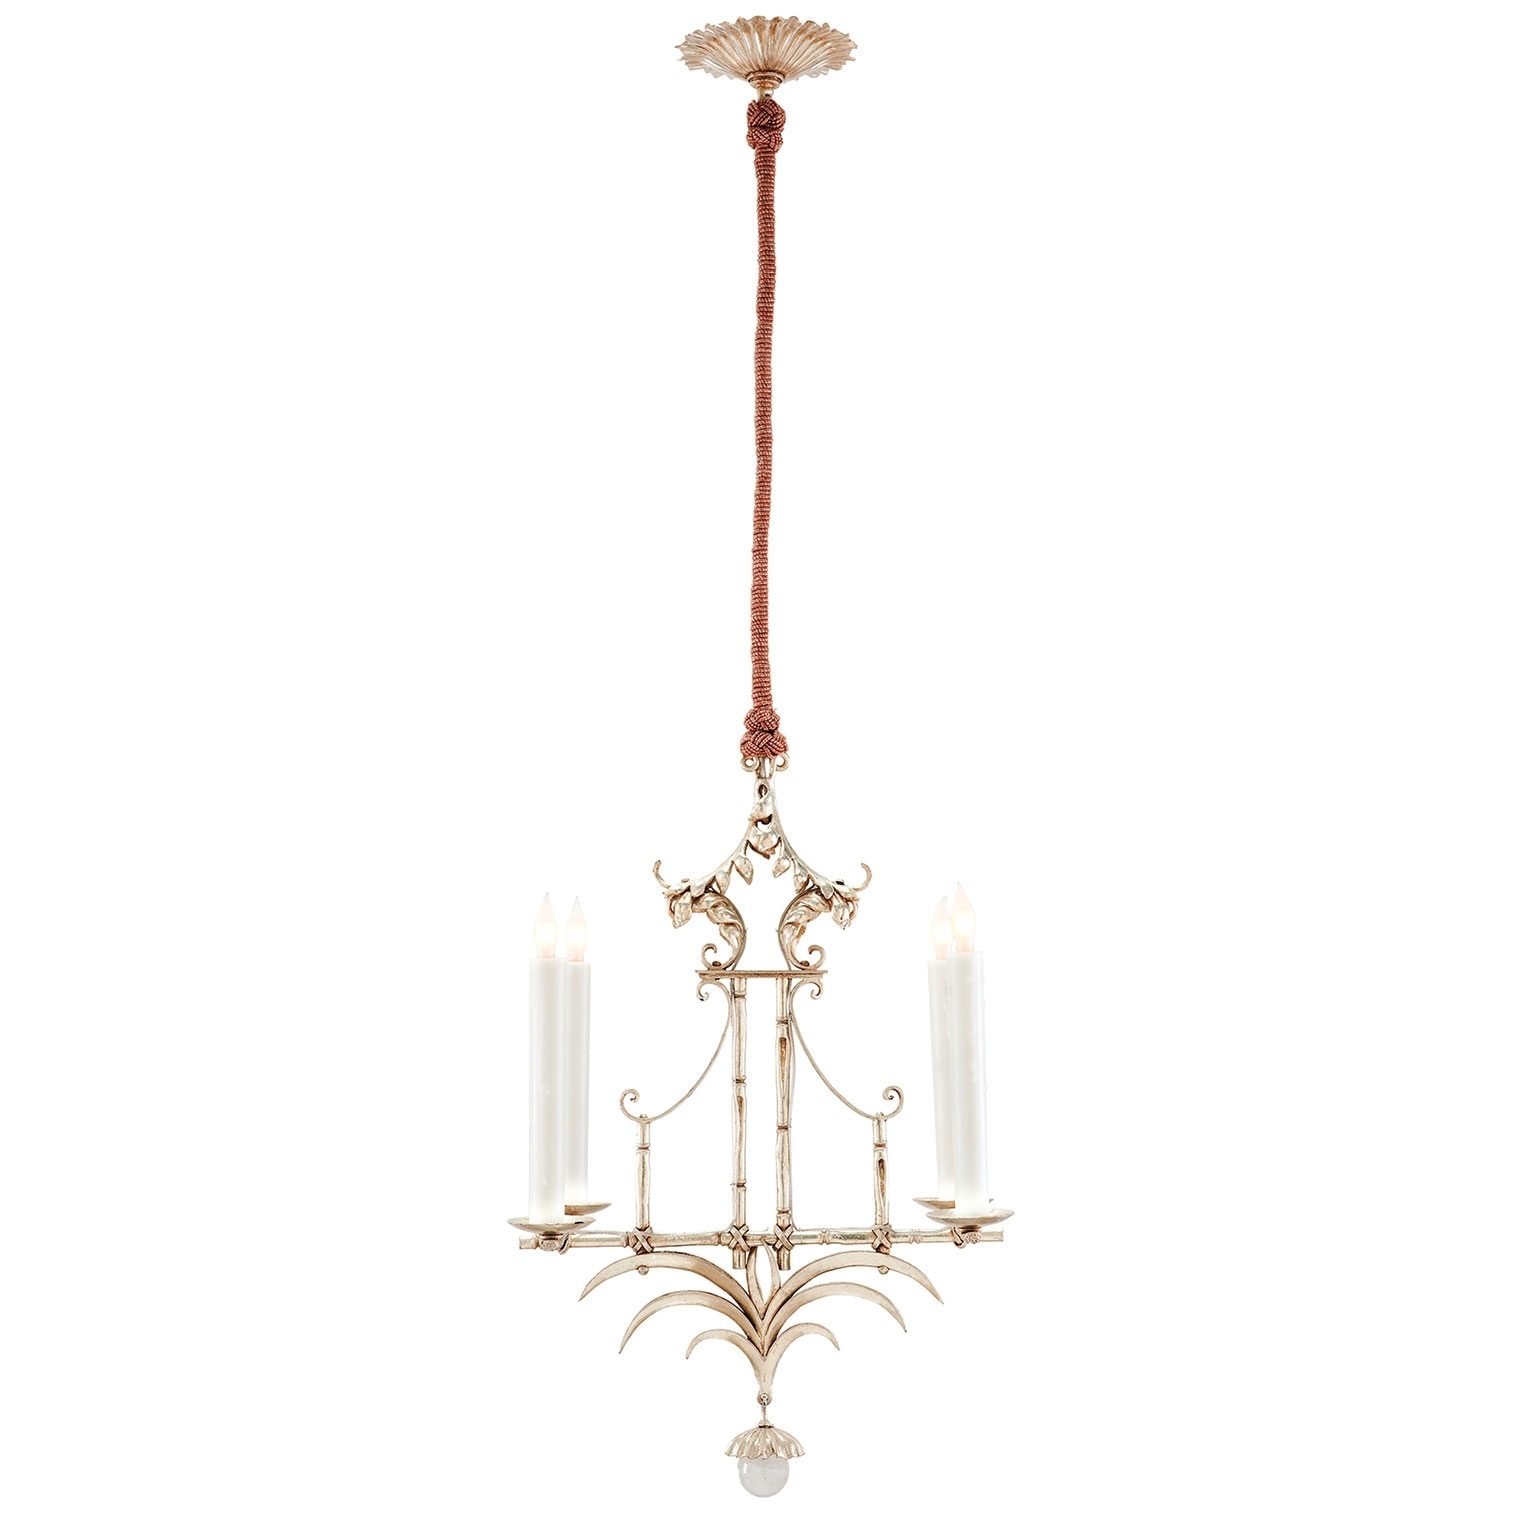 Chandeliers Design : Marvelous Kartell Lamp Transitional Chandelier For Recent Turquoise Lantern Chandeliers (View 8 of 20)